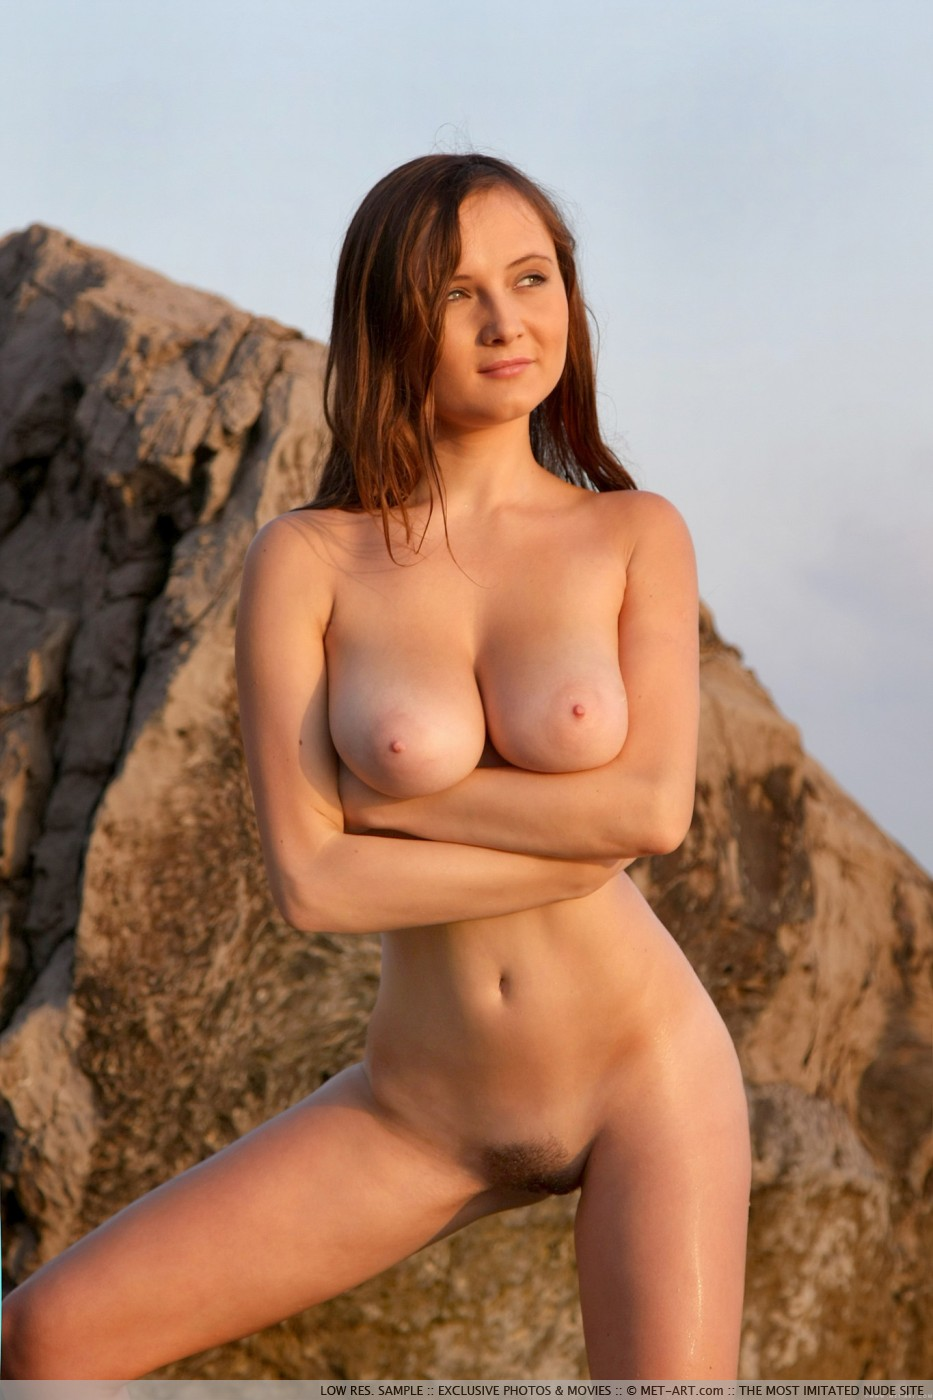 Naked natural girls nude beach are